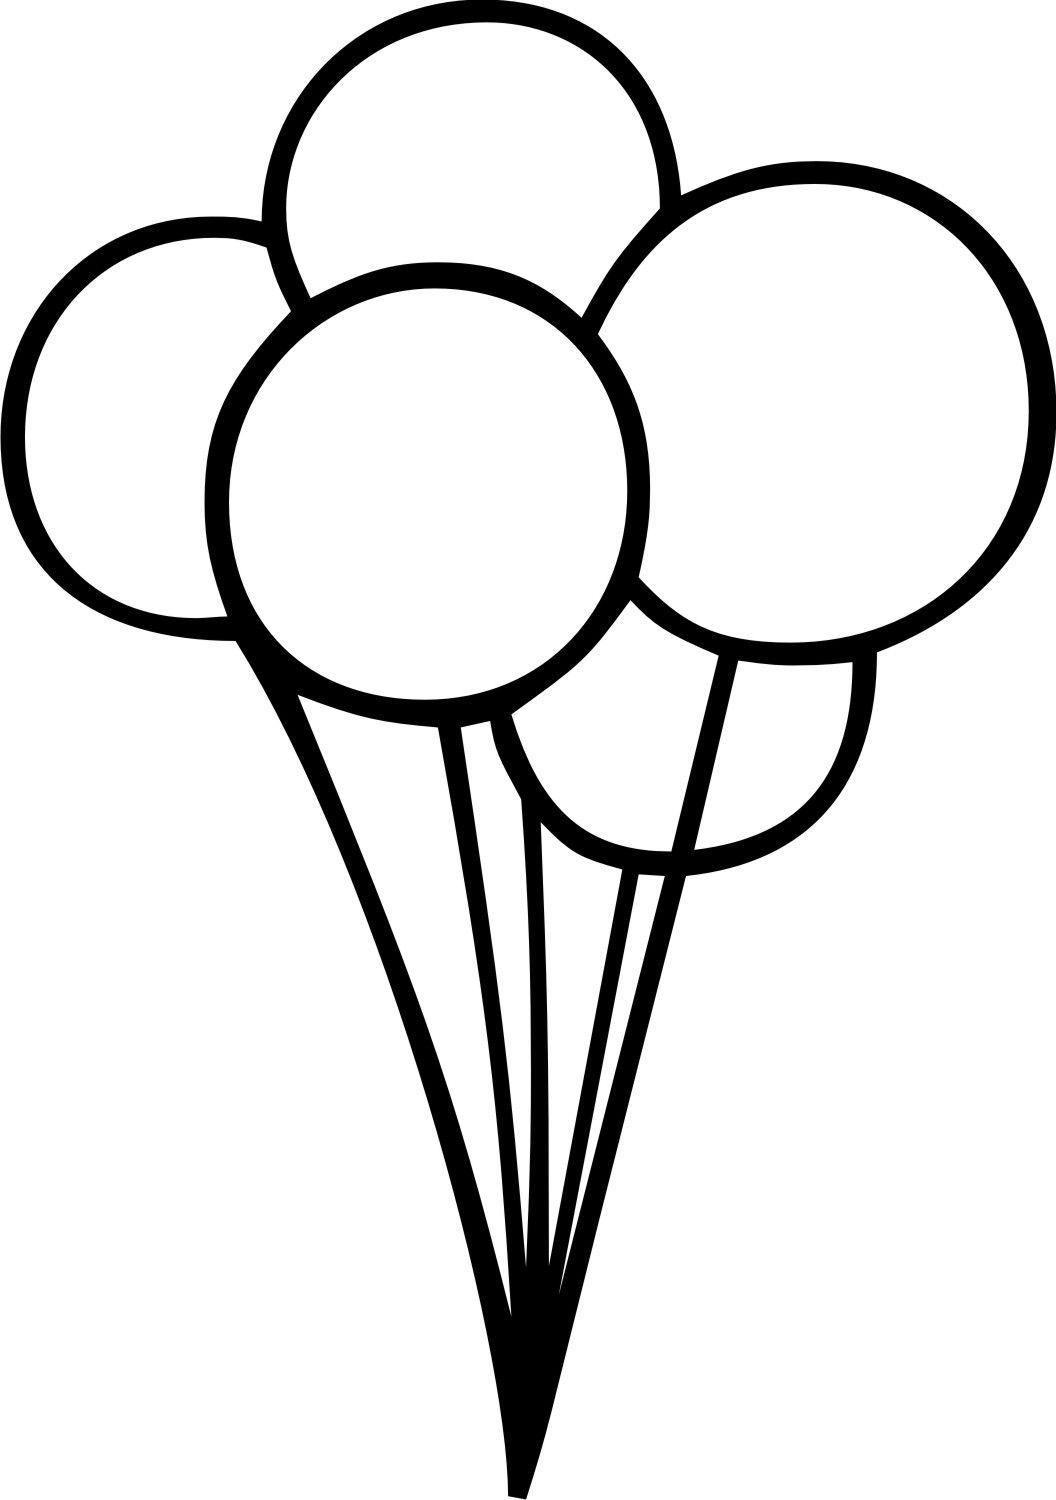 birthday balloons clip art black and white 2.